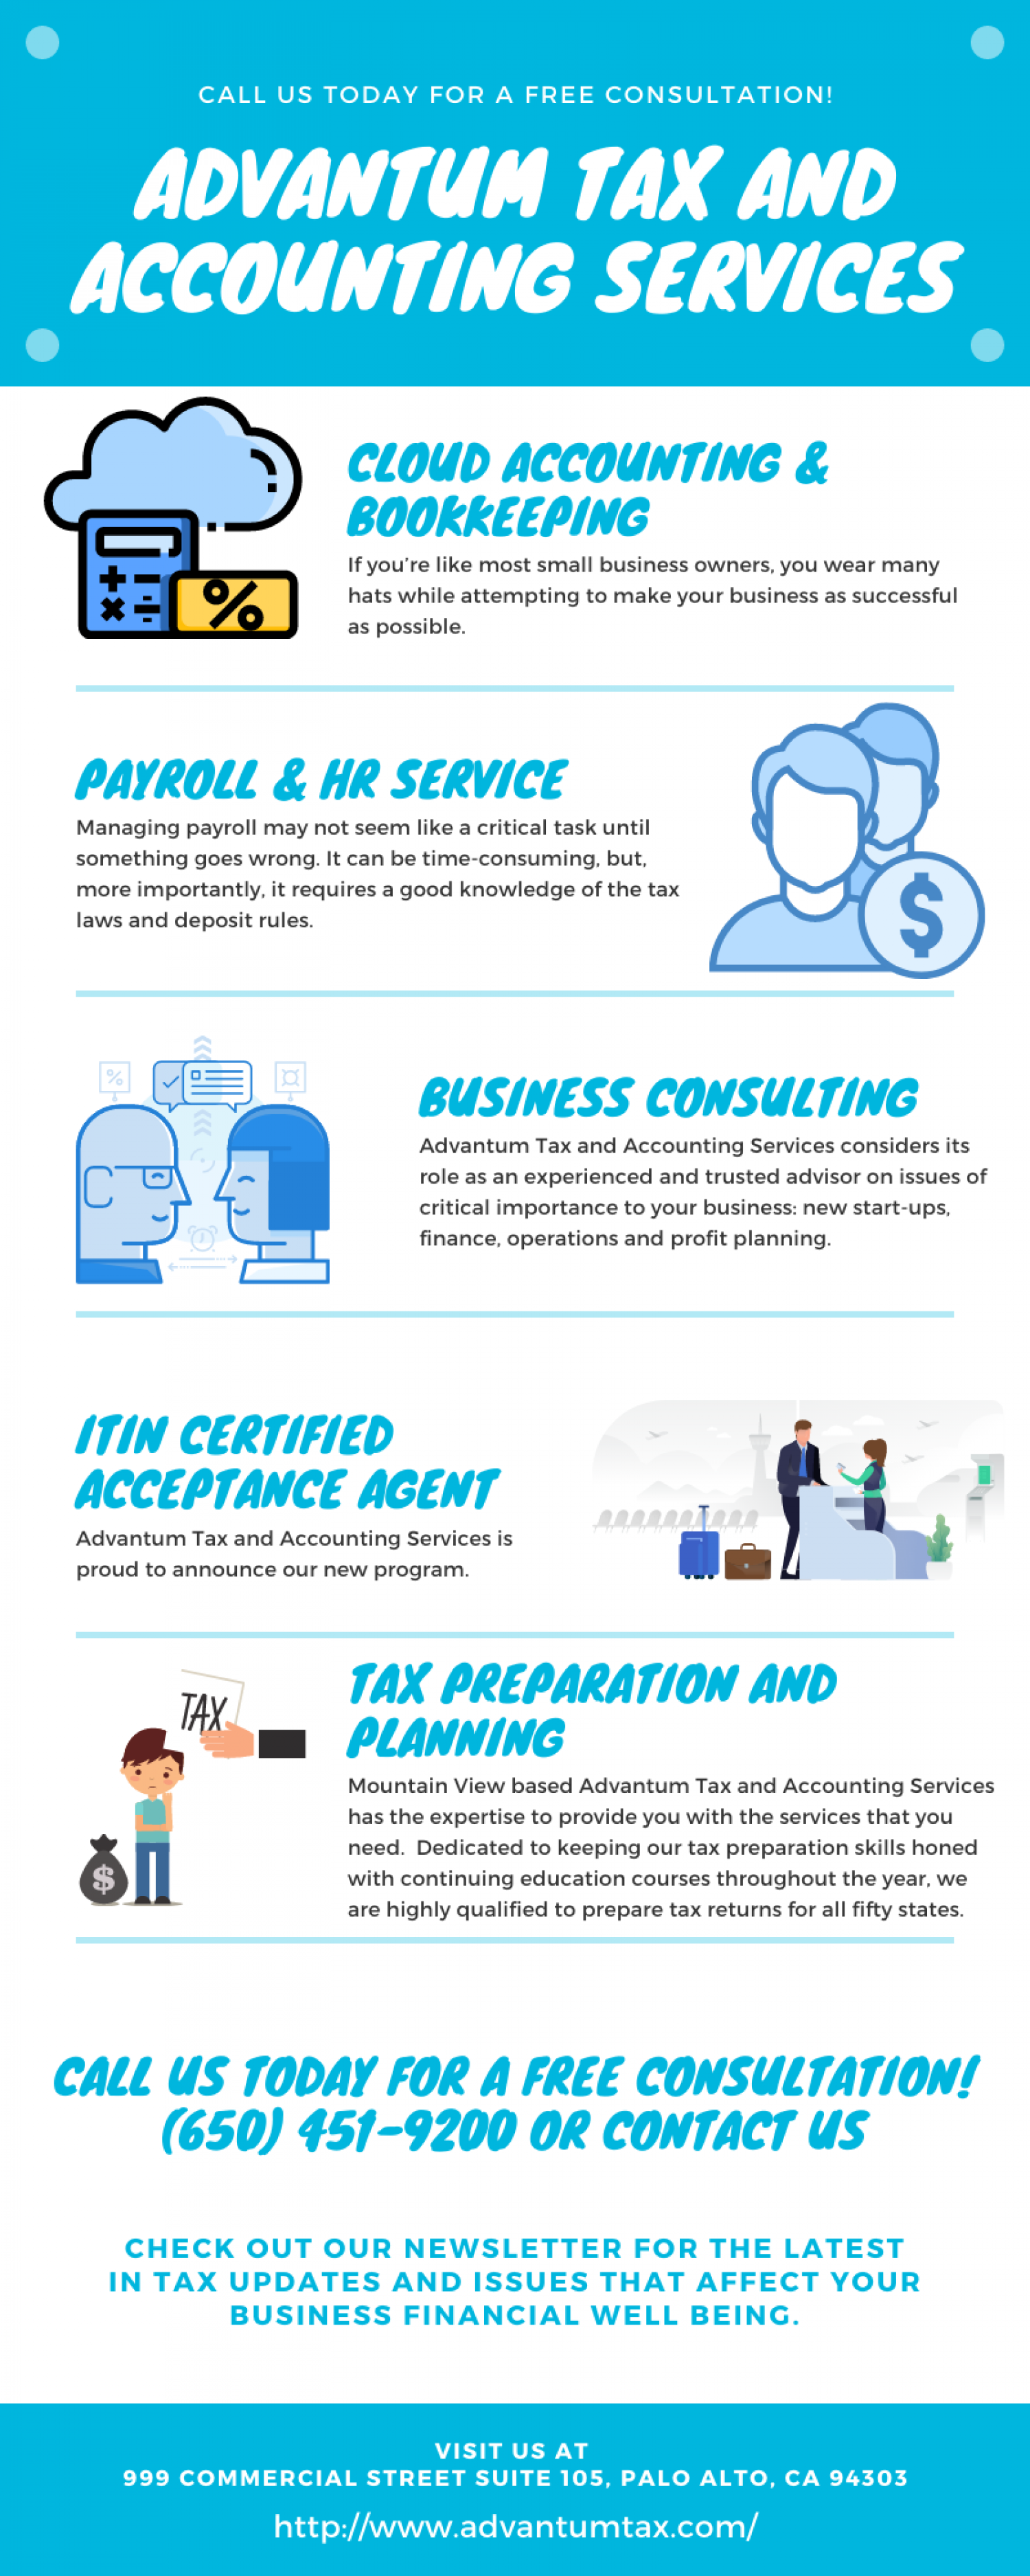 CPA Near Me  - Advantum Tax and Accounting Services  Infographic